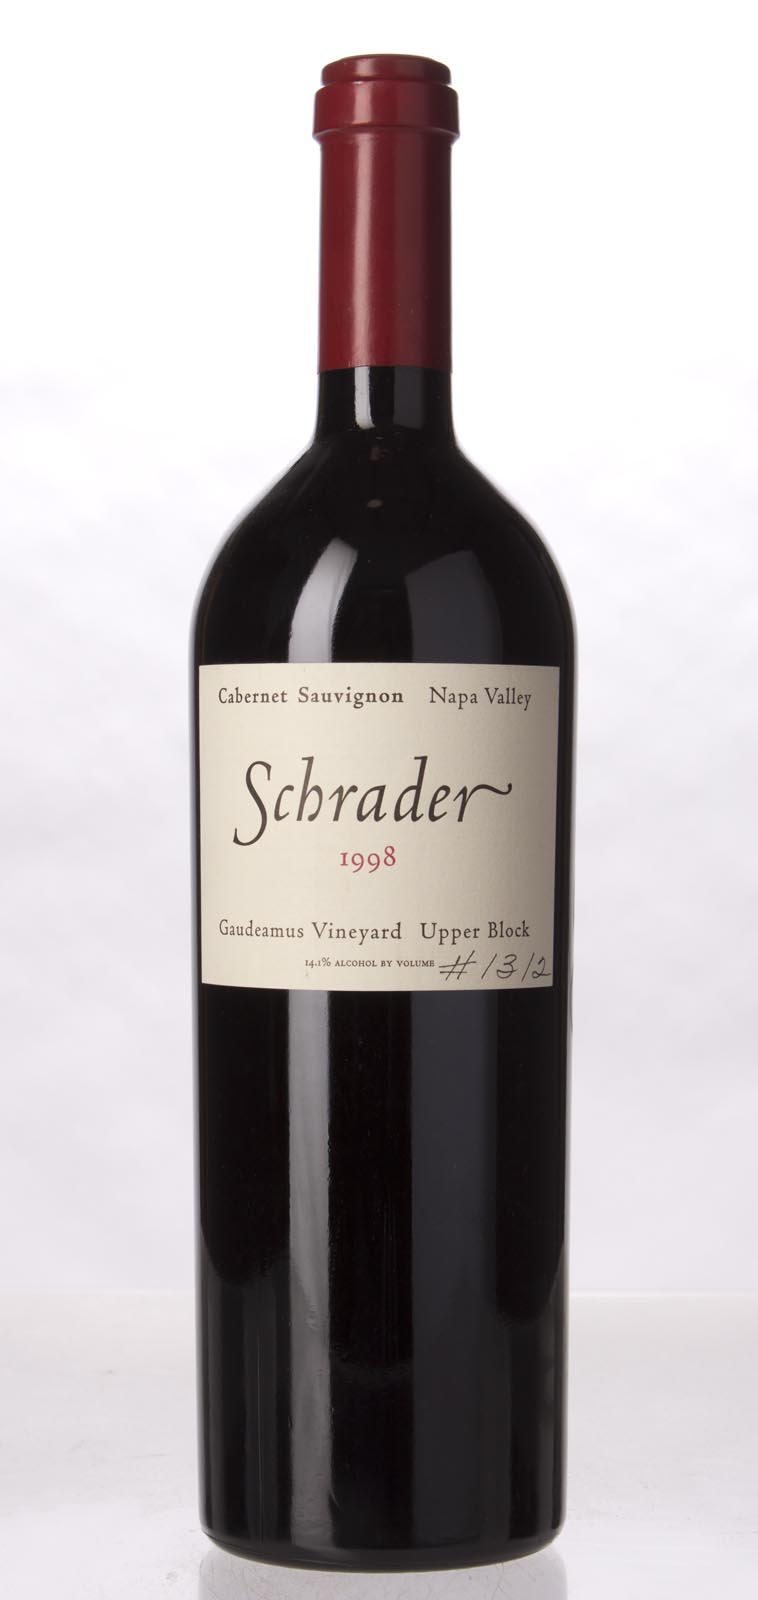 Schrader Cellars Cabernet Sauvignon Gaudeamus Vineyard Upper Block 1998, 750mL (WS91) from The BPW - Merchants of rare and fine wines.